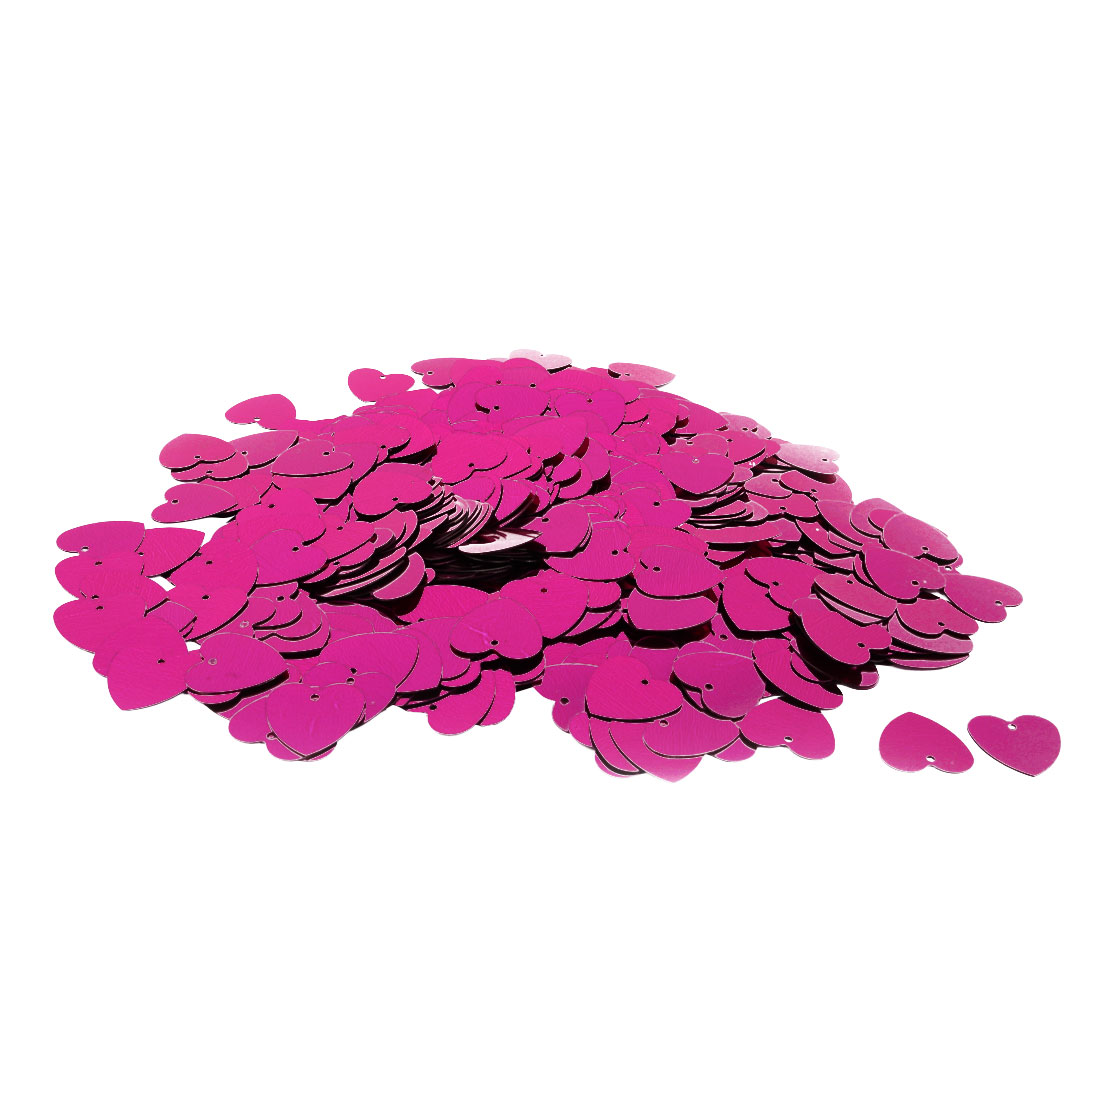 Wedding Party Plastic Heart Shaped Romance DIY Crystal Table Decor Fuchsia 500 Pcs